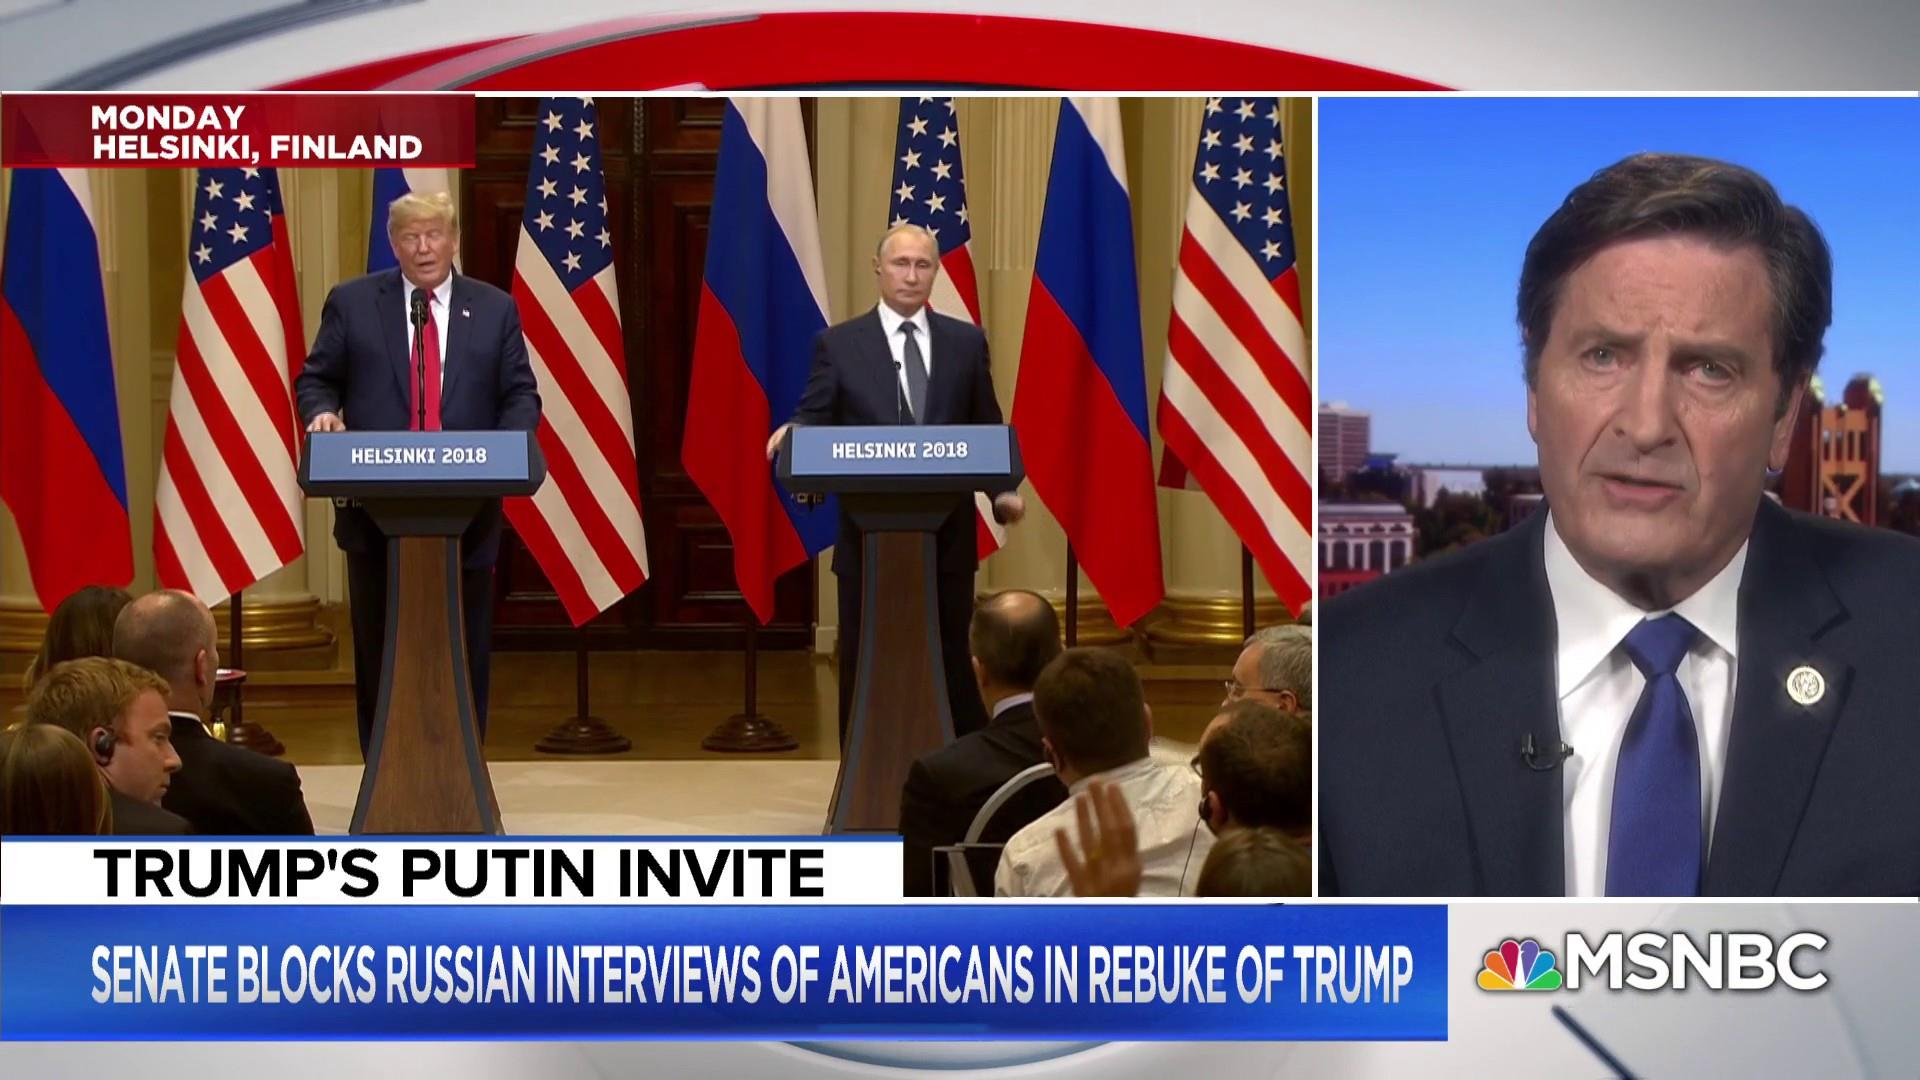 House Democrat: Don't give Putin a summit in the U.S.